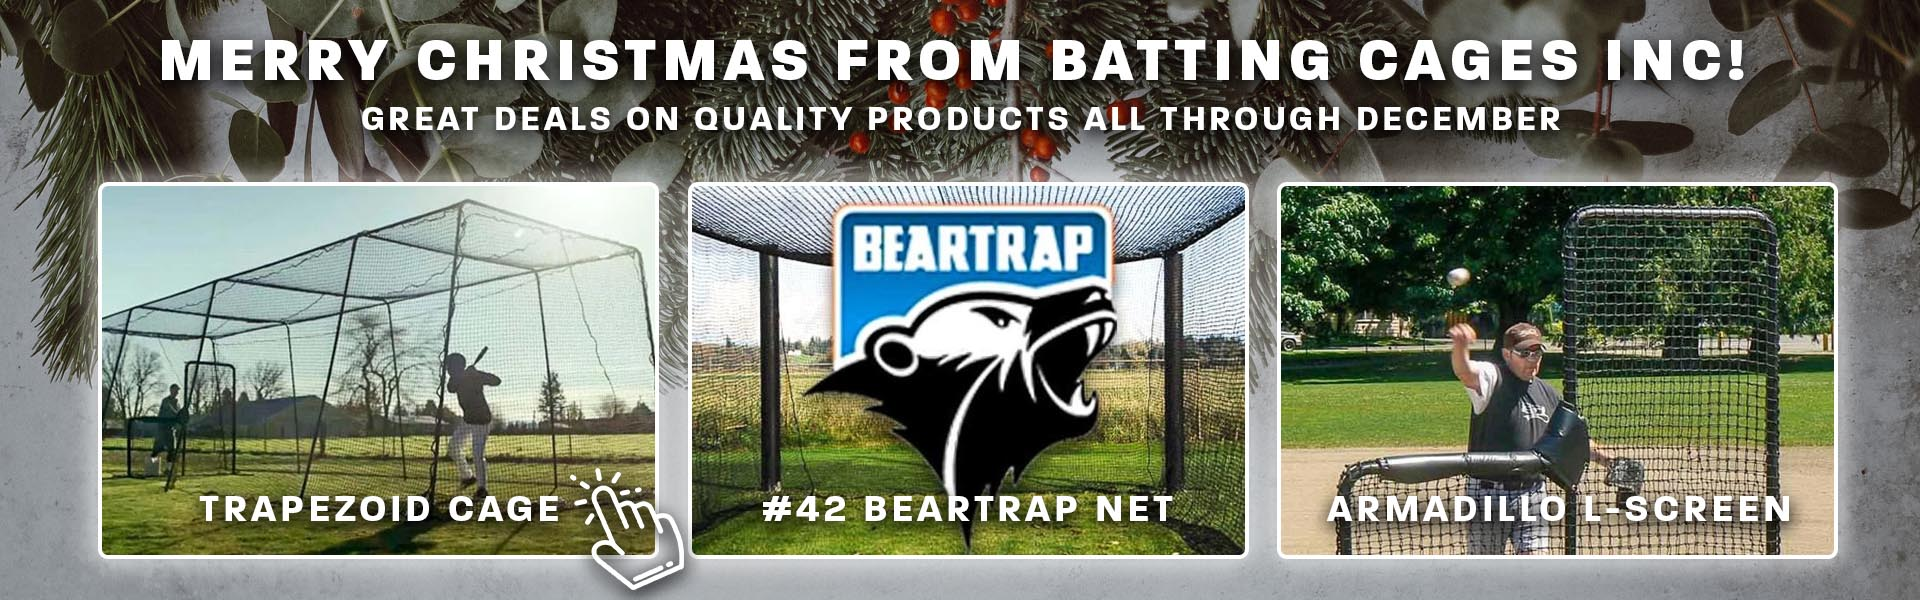 Batting Cages Inc Christmas Sales